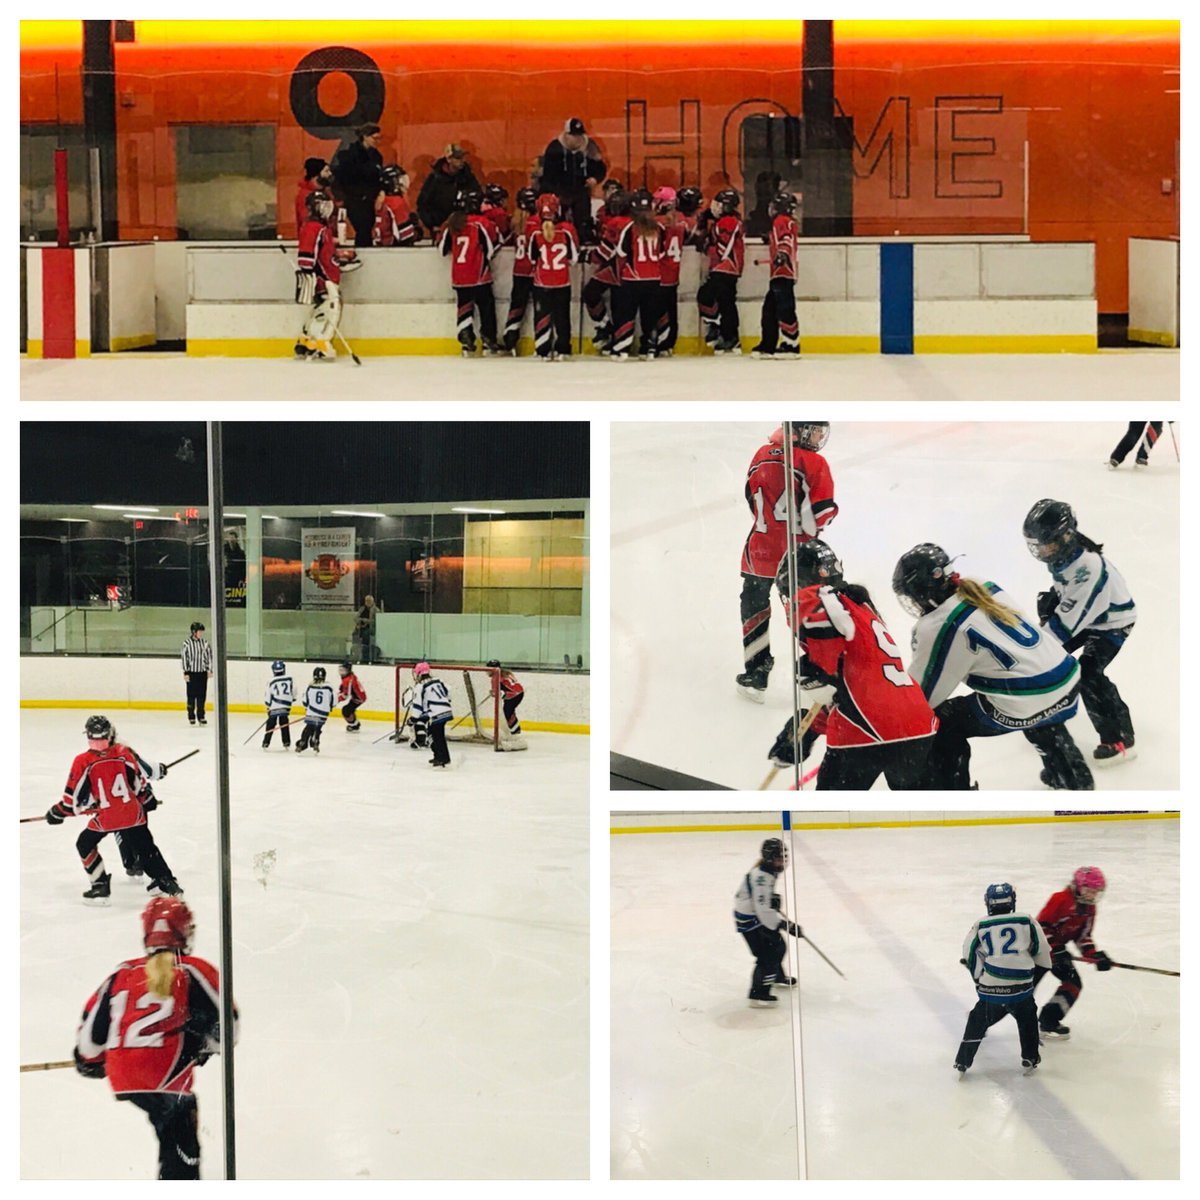 The U12B Flash had a tough loss this morning vs the South Calgary Rampage in the Ring in the Holidays tournament!  Better luck in the next game!  #spra #ringettetournament pic.twitter.com/FzdvHmGZUT